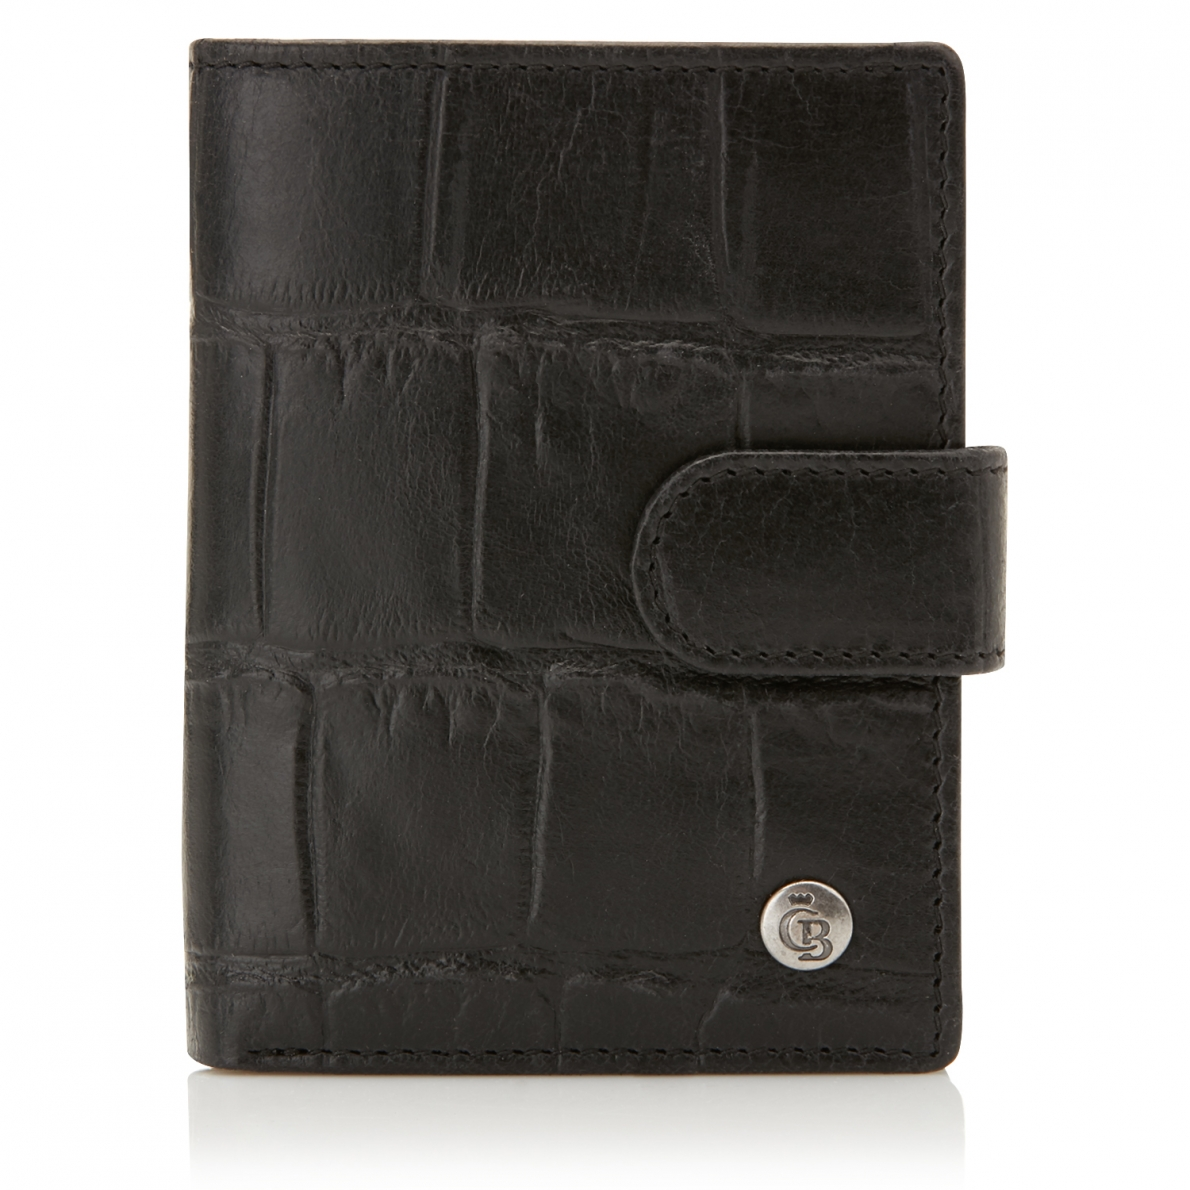 98d4be05a5c Wallets | special purses and other accessories | indeSHOP